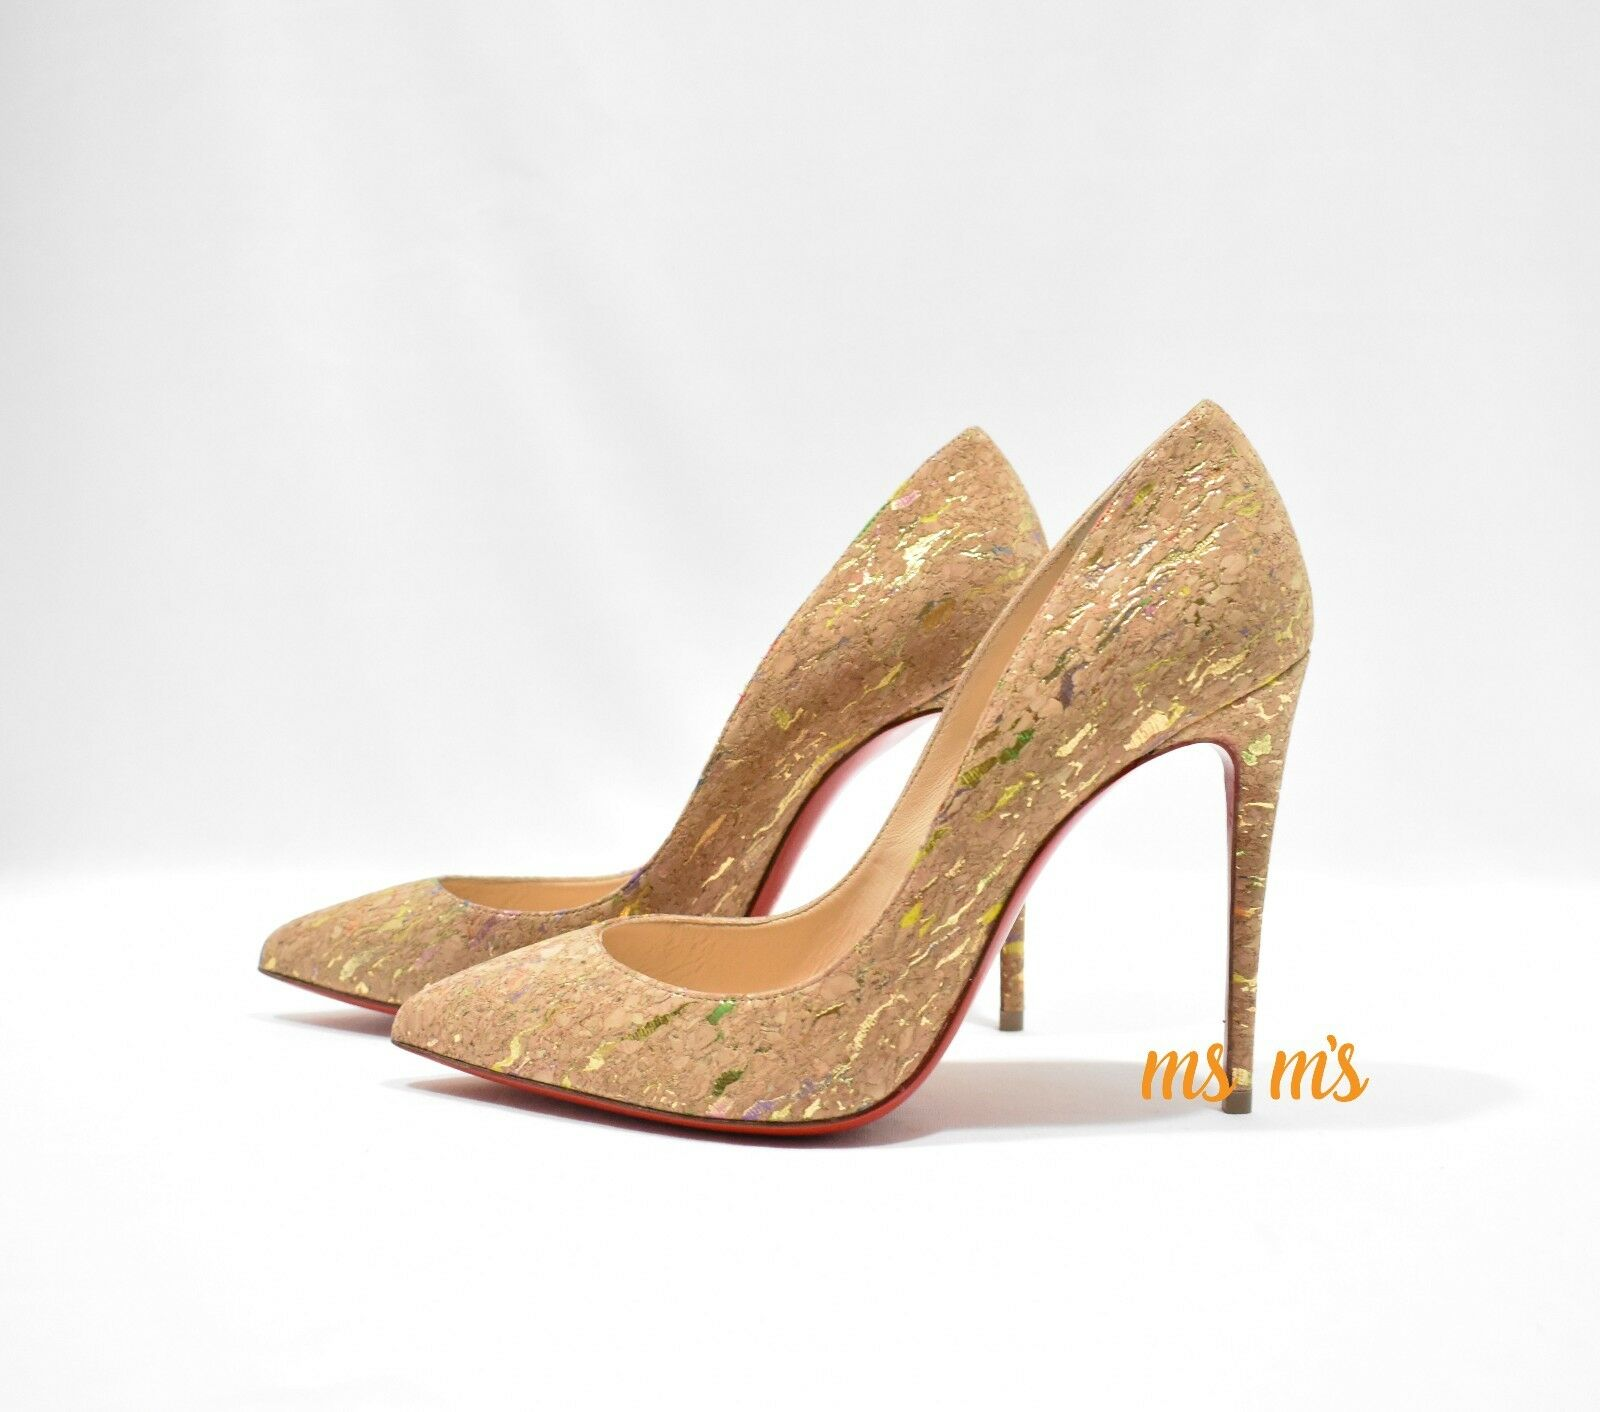 low priced 70462 46b12 New Christian Louboutin Pigalle Pigalle Pigalle Follies Cork ...